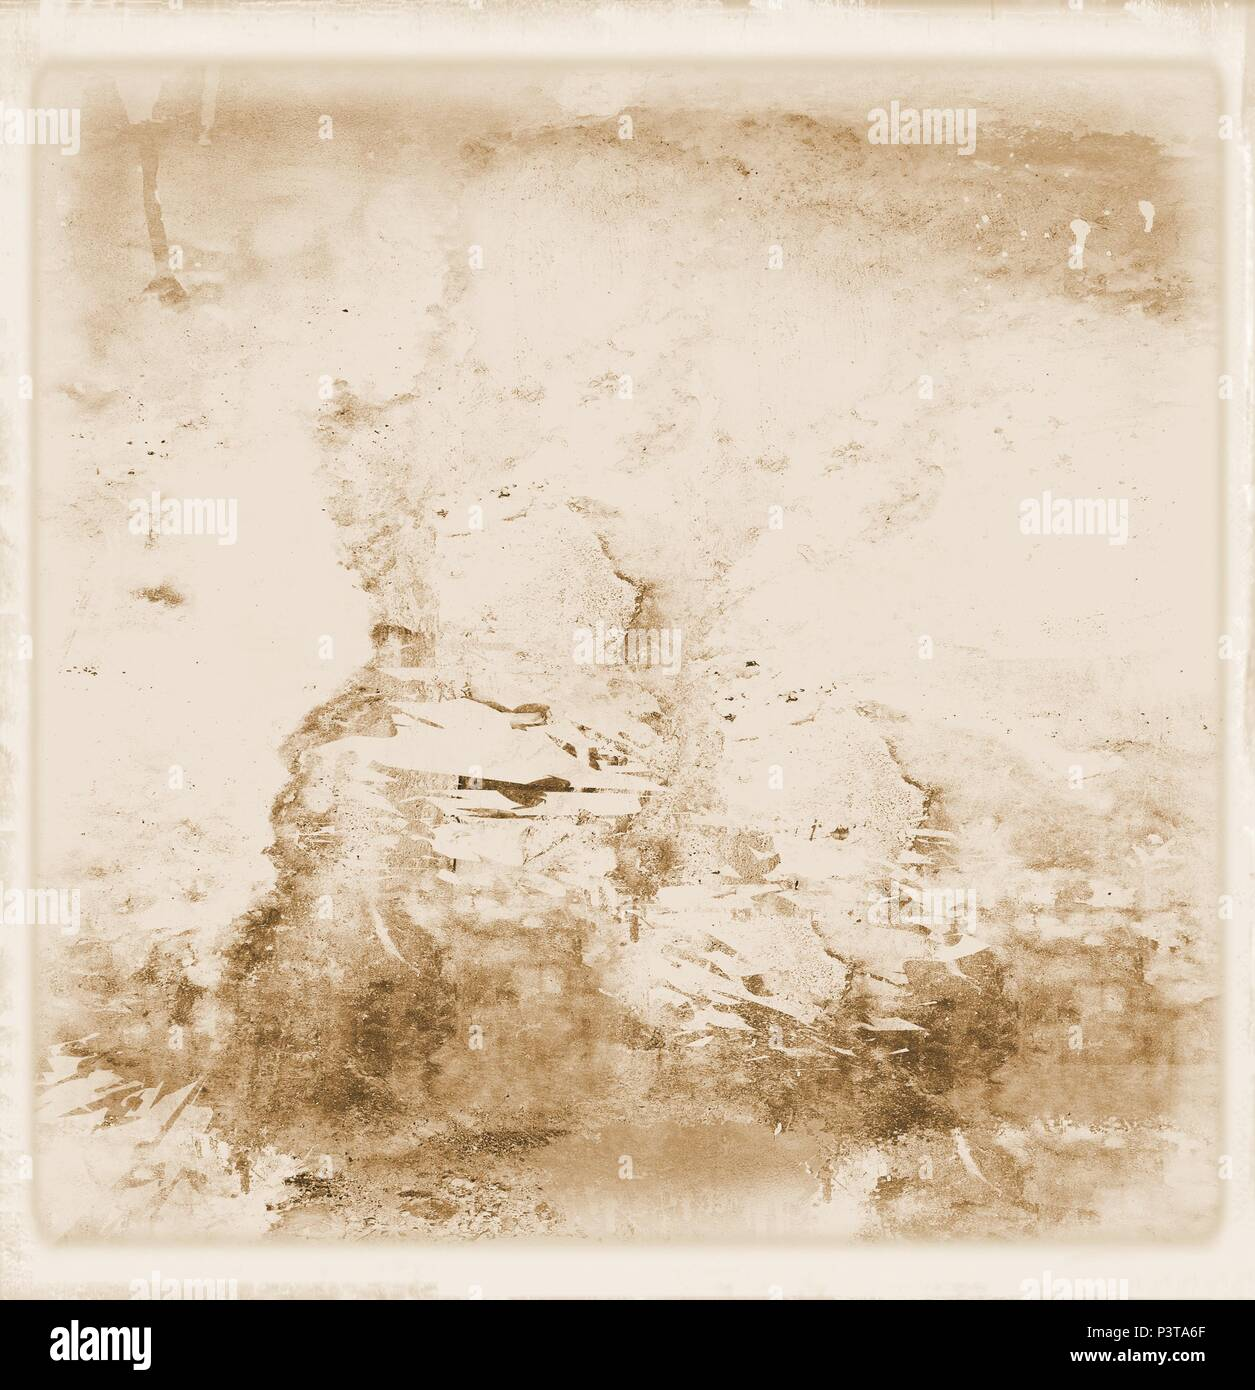 Vintage wall faded surface in sepia tones. For texture or background. - Stock Image